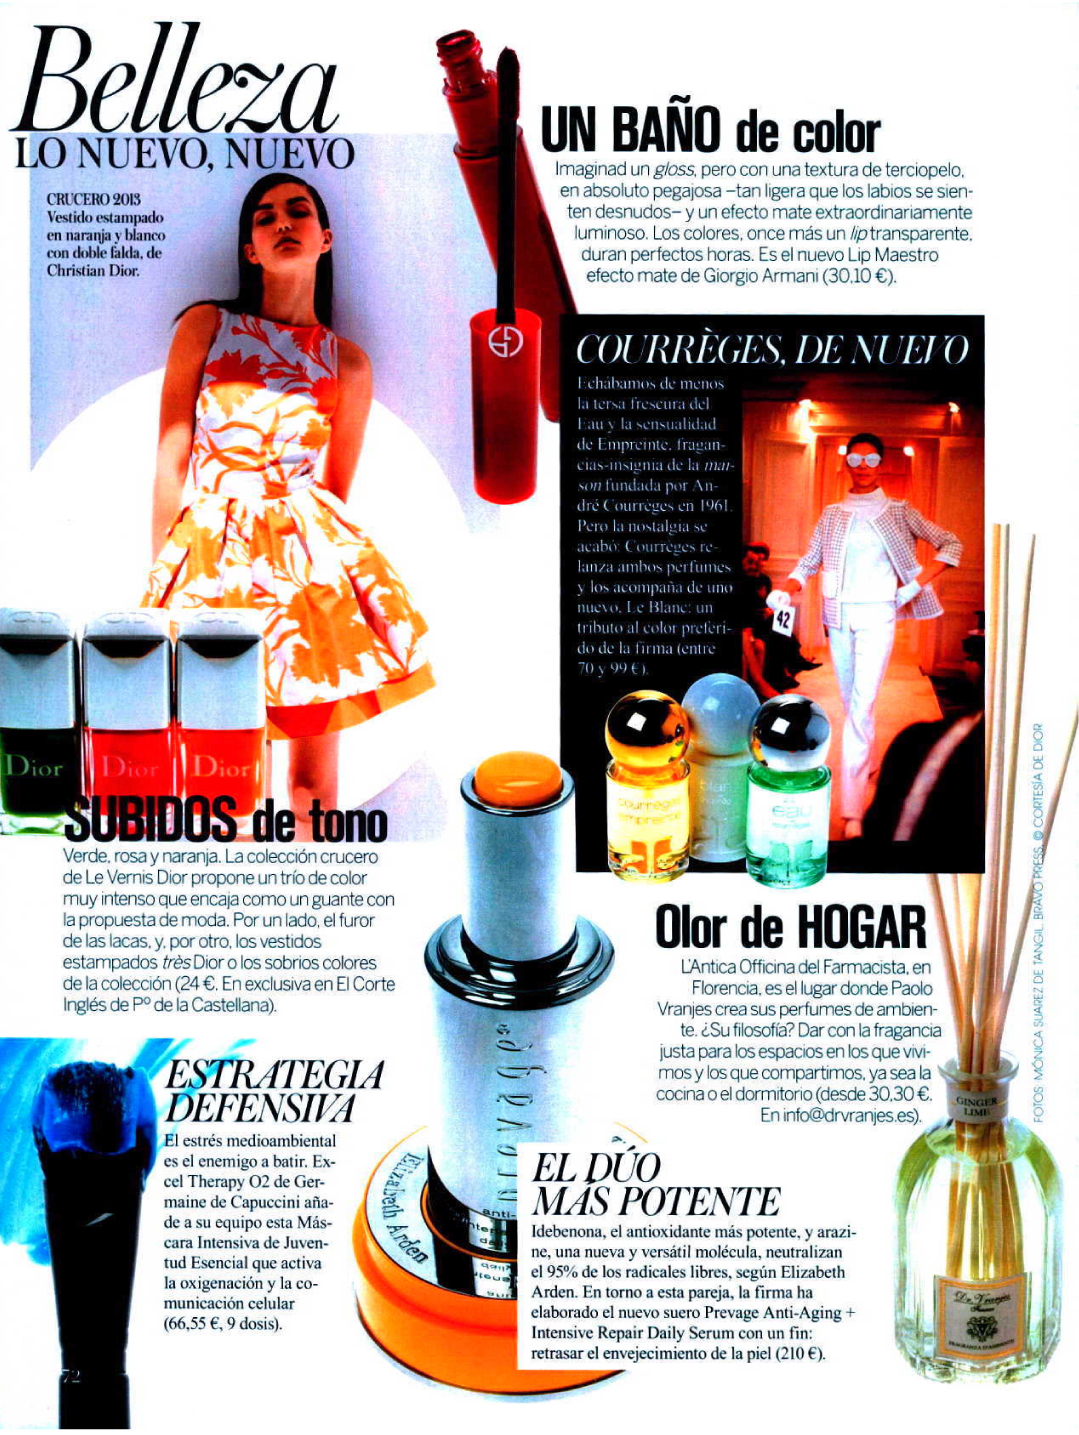 EXCEL THERAPY O2 ( VOGUE ) 01/02/2013